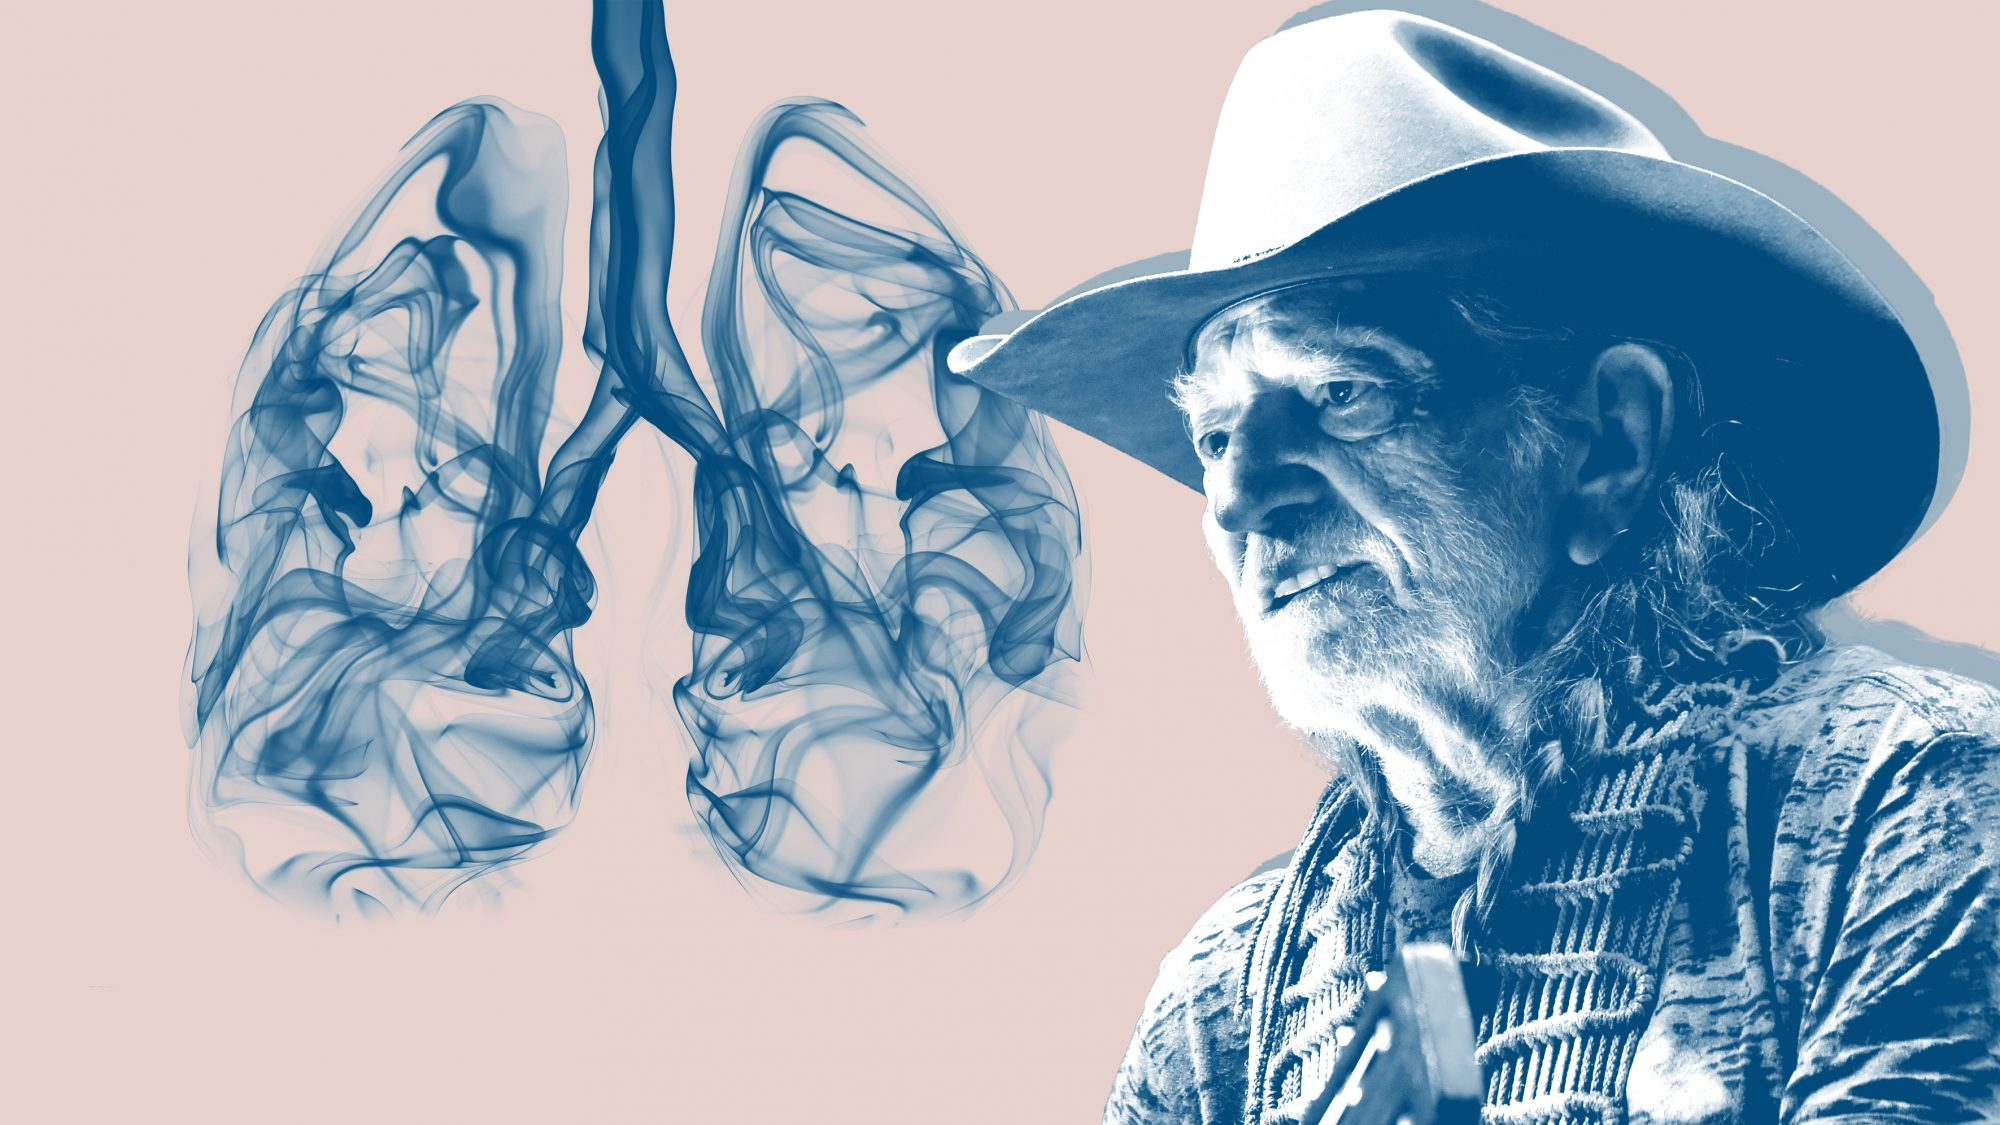 willie-nelson-marijuana-lung-damage